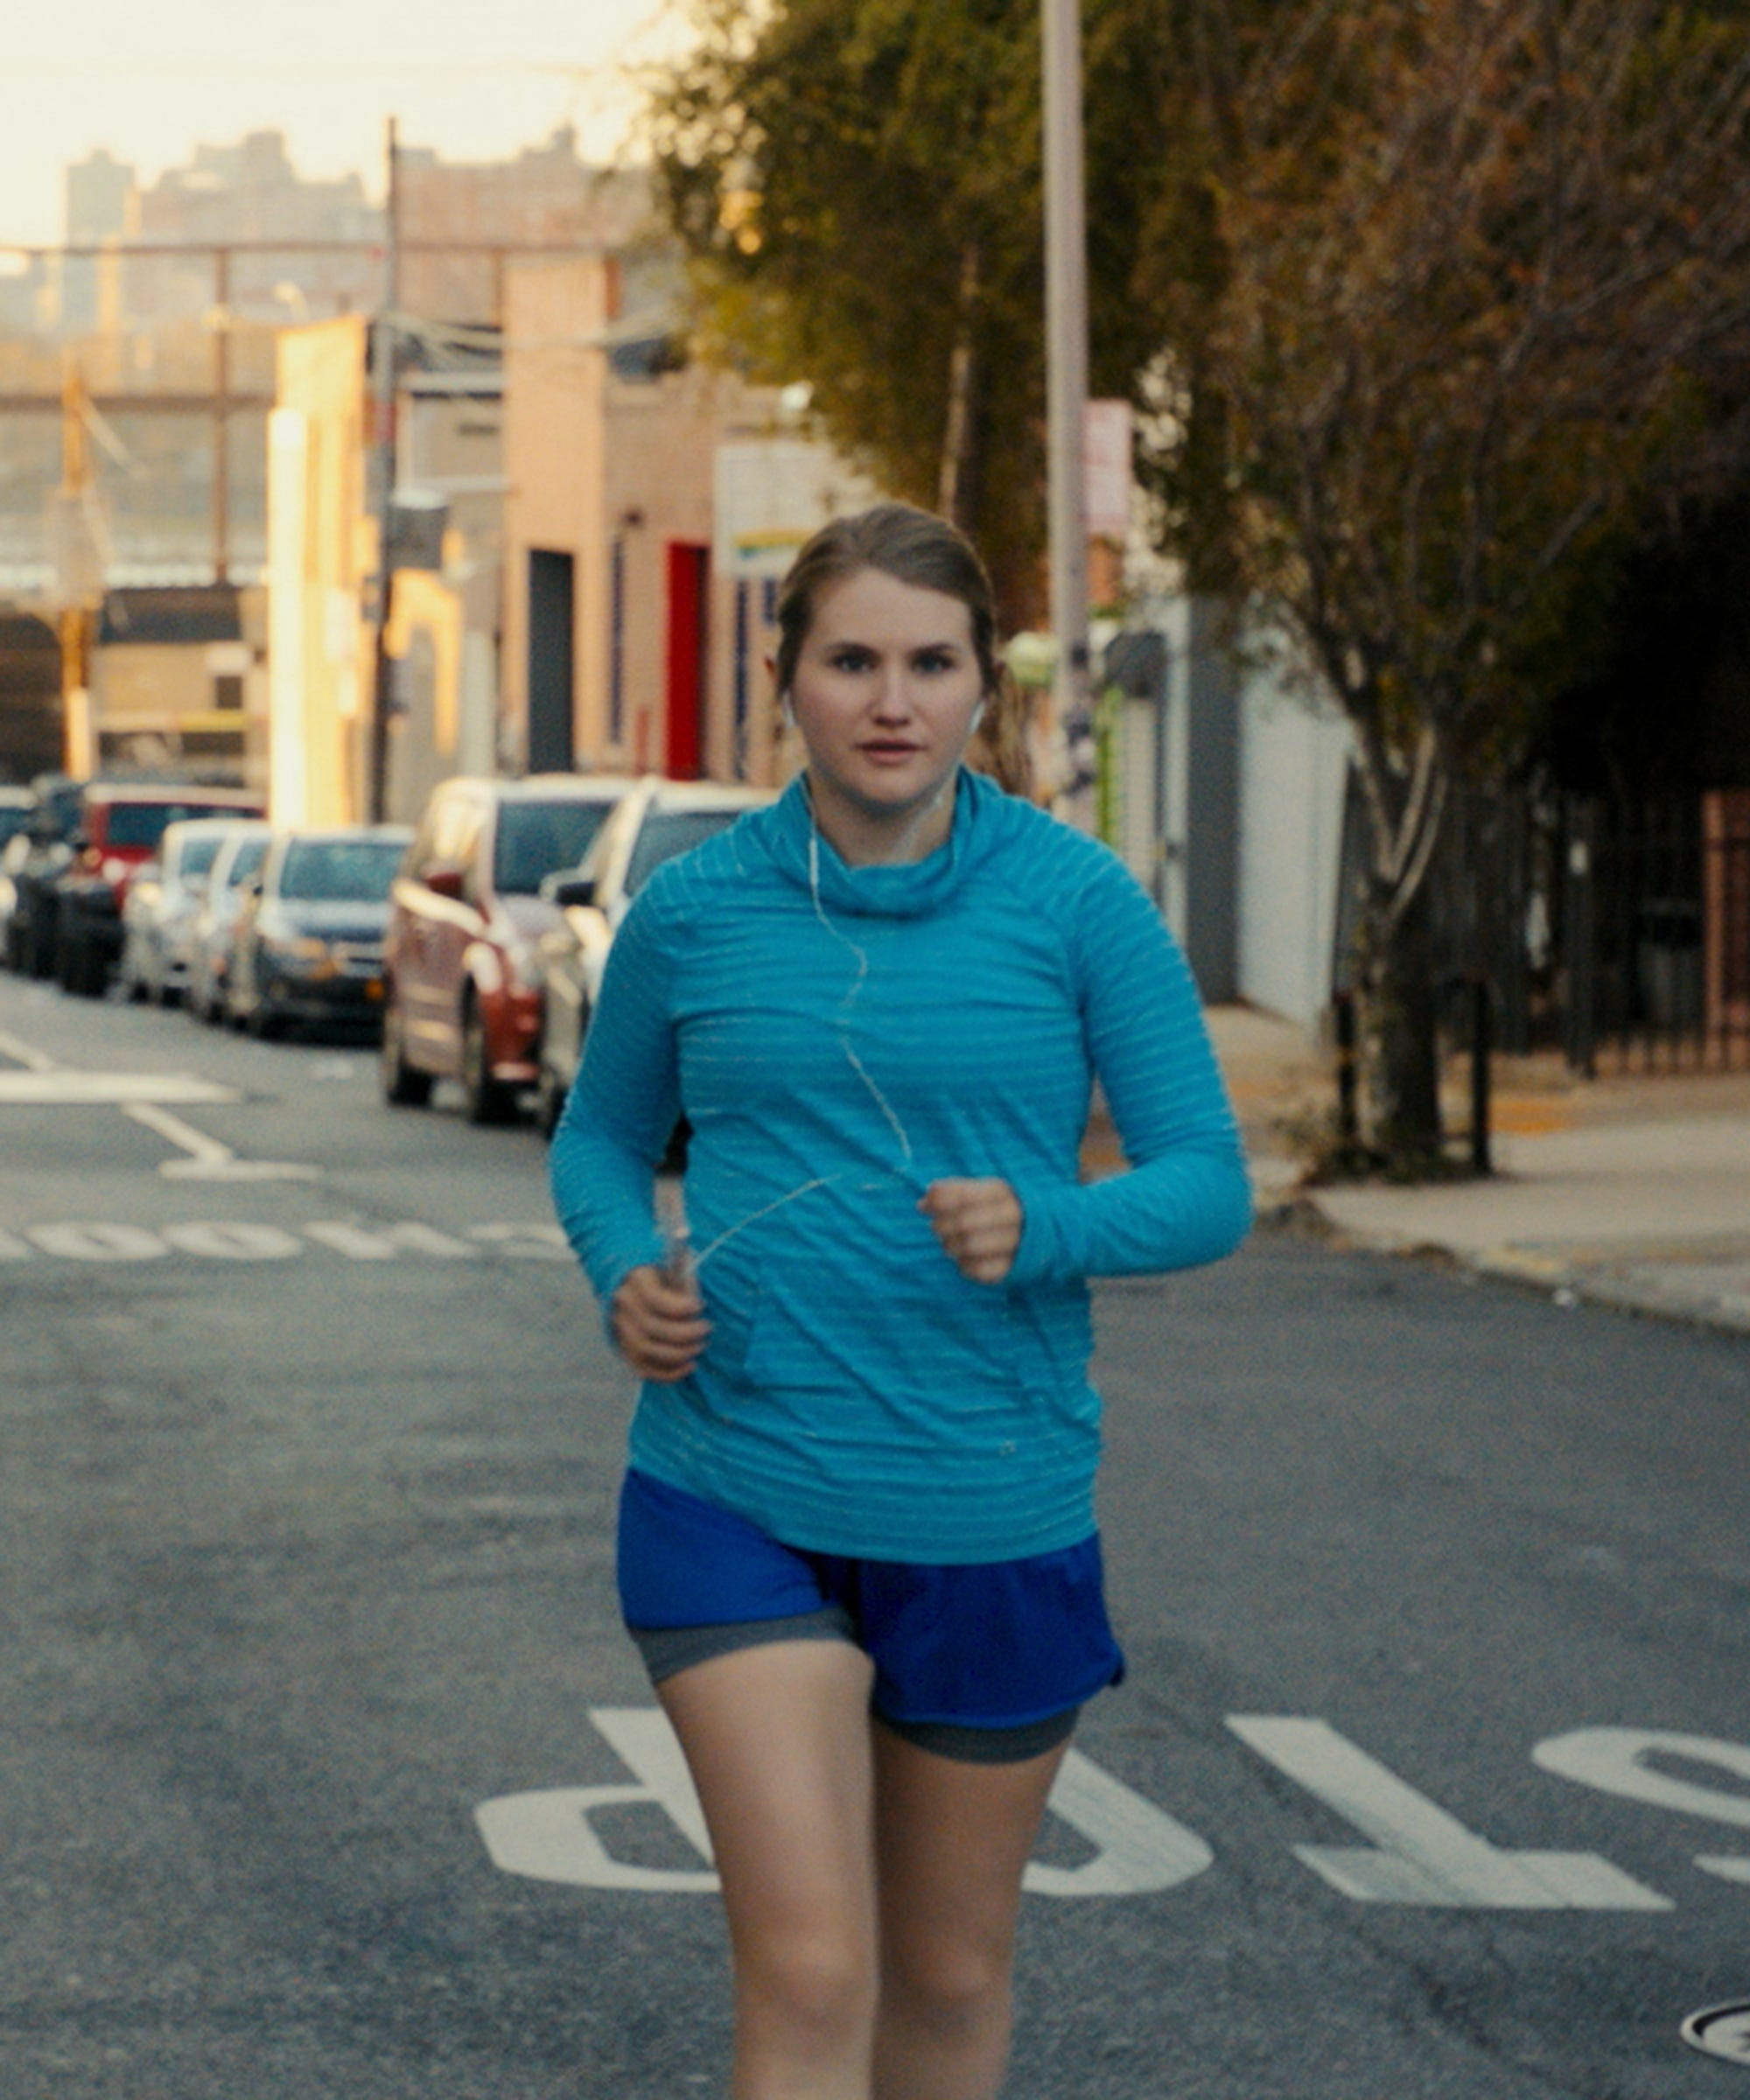 Brittany Runs A Marathon Is Based On This Inspiring True Story